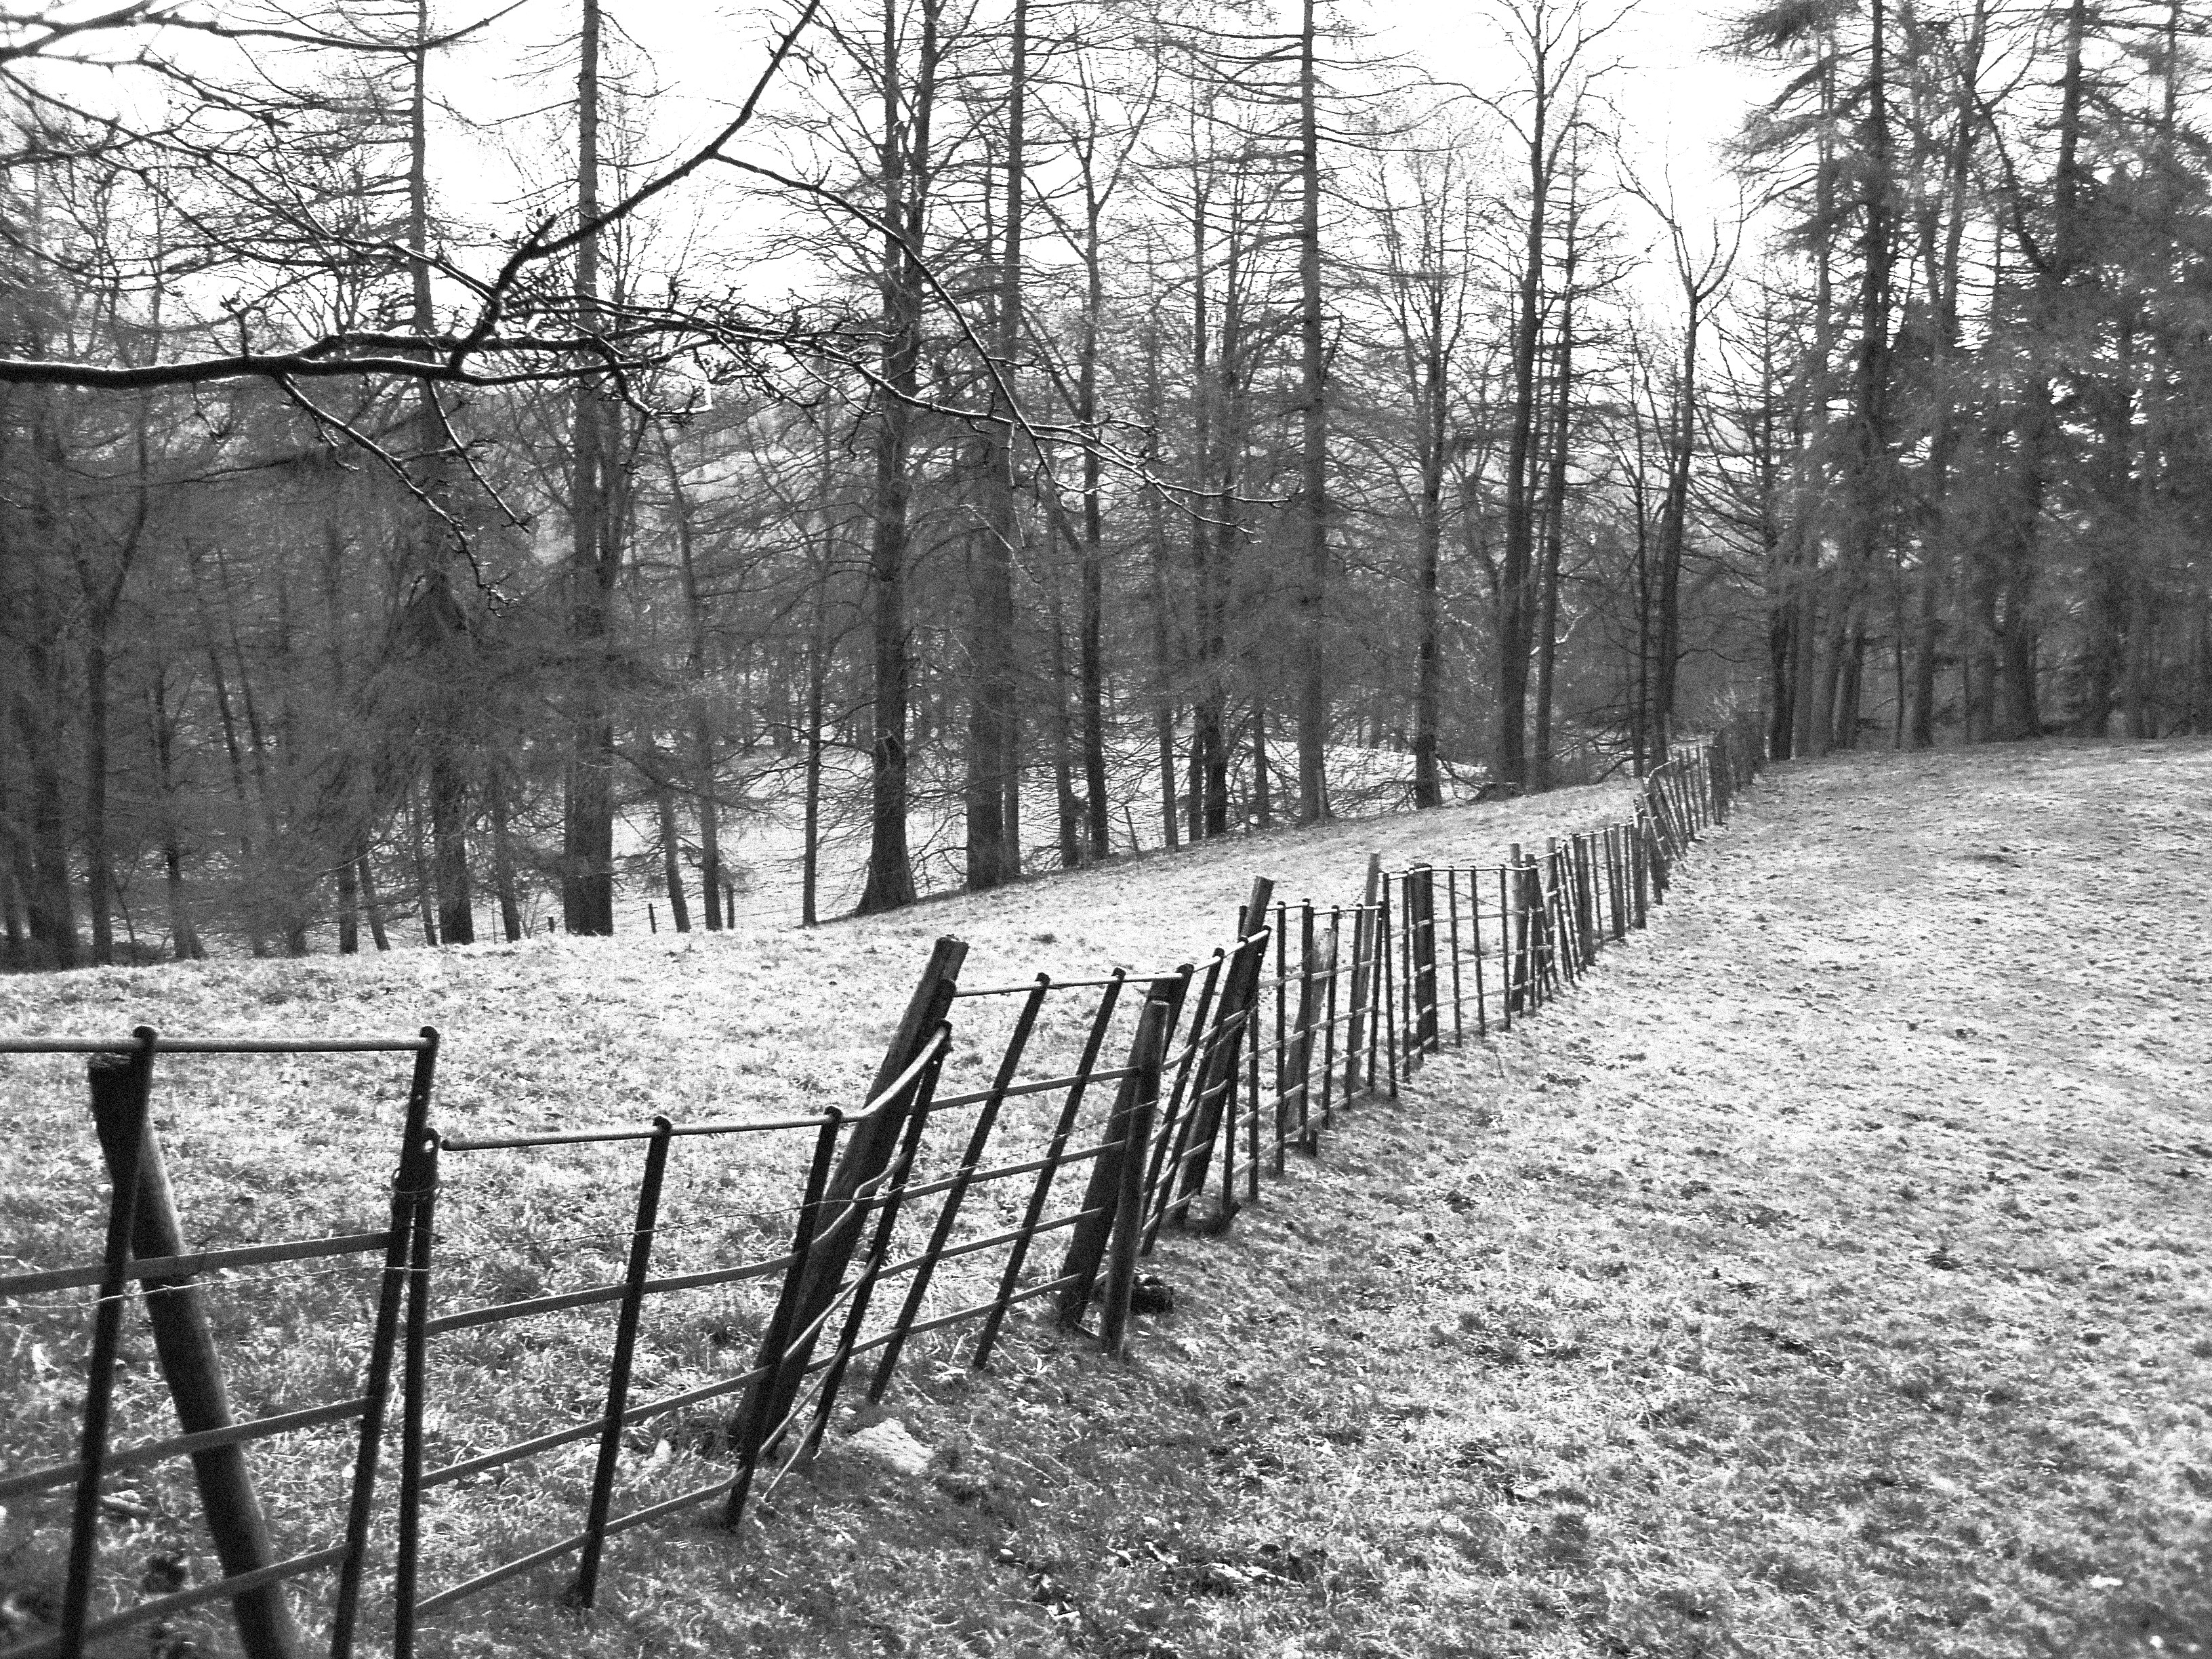 black and white high contrast photo of a metal fence